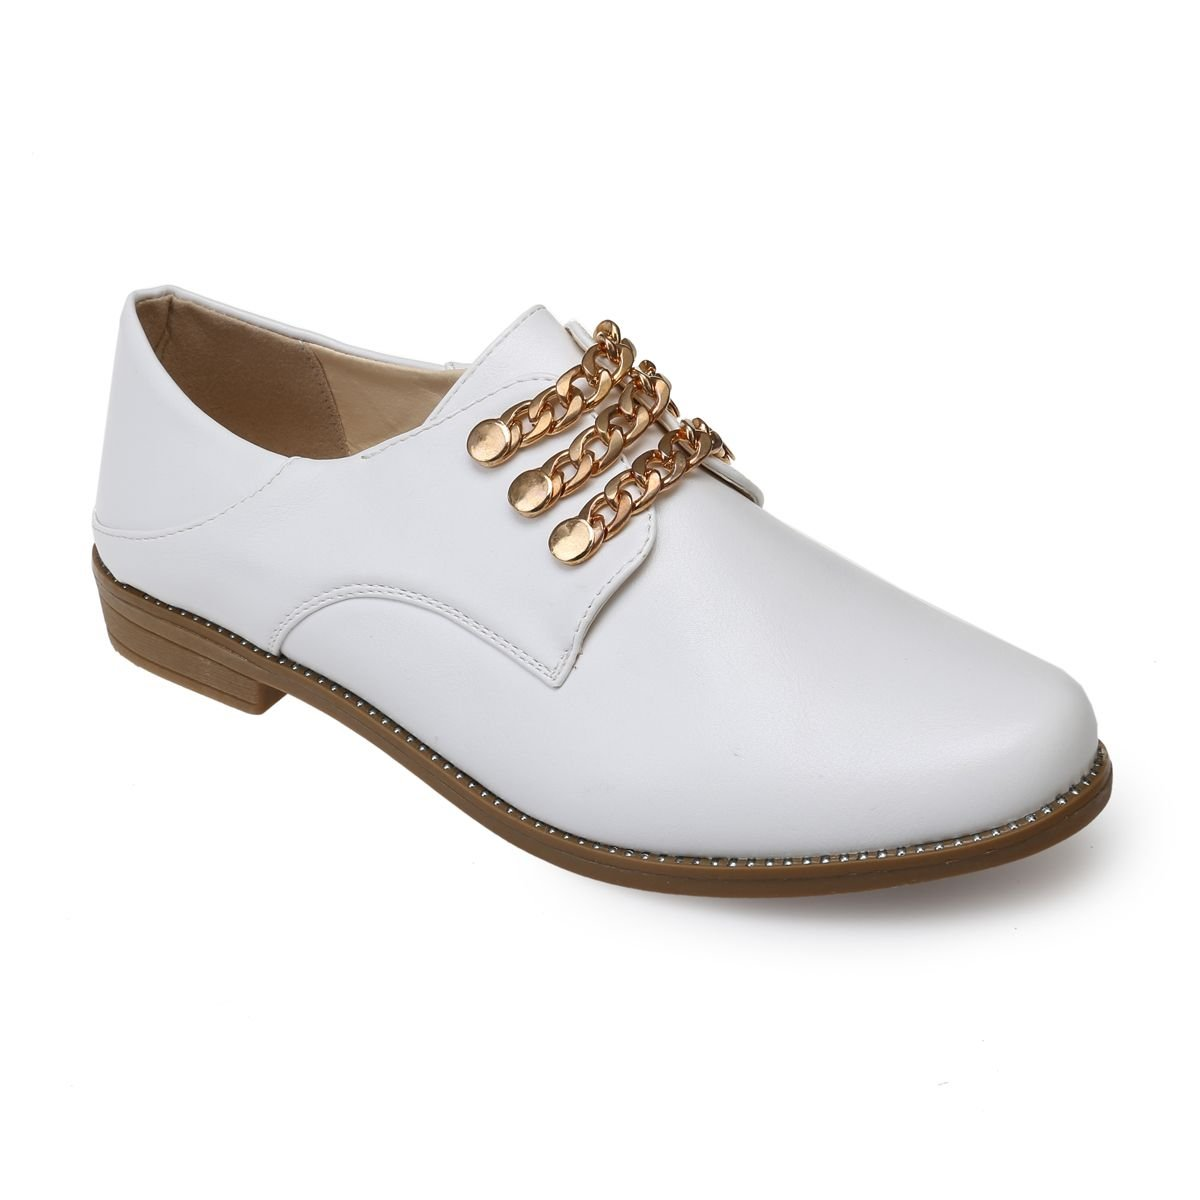 La Modeuse - Derbies - en 19123 Simili Cuir Cuir Blanc 001b1f9 - fast-weightloss-diet.space